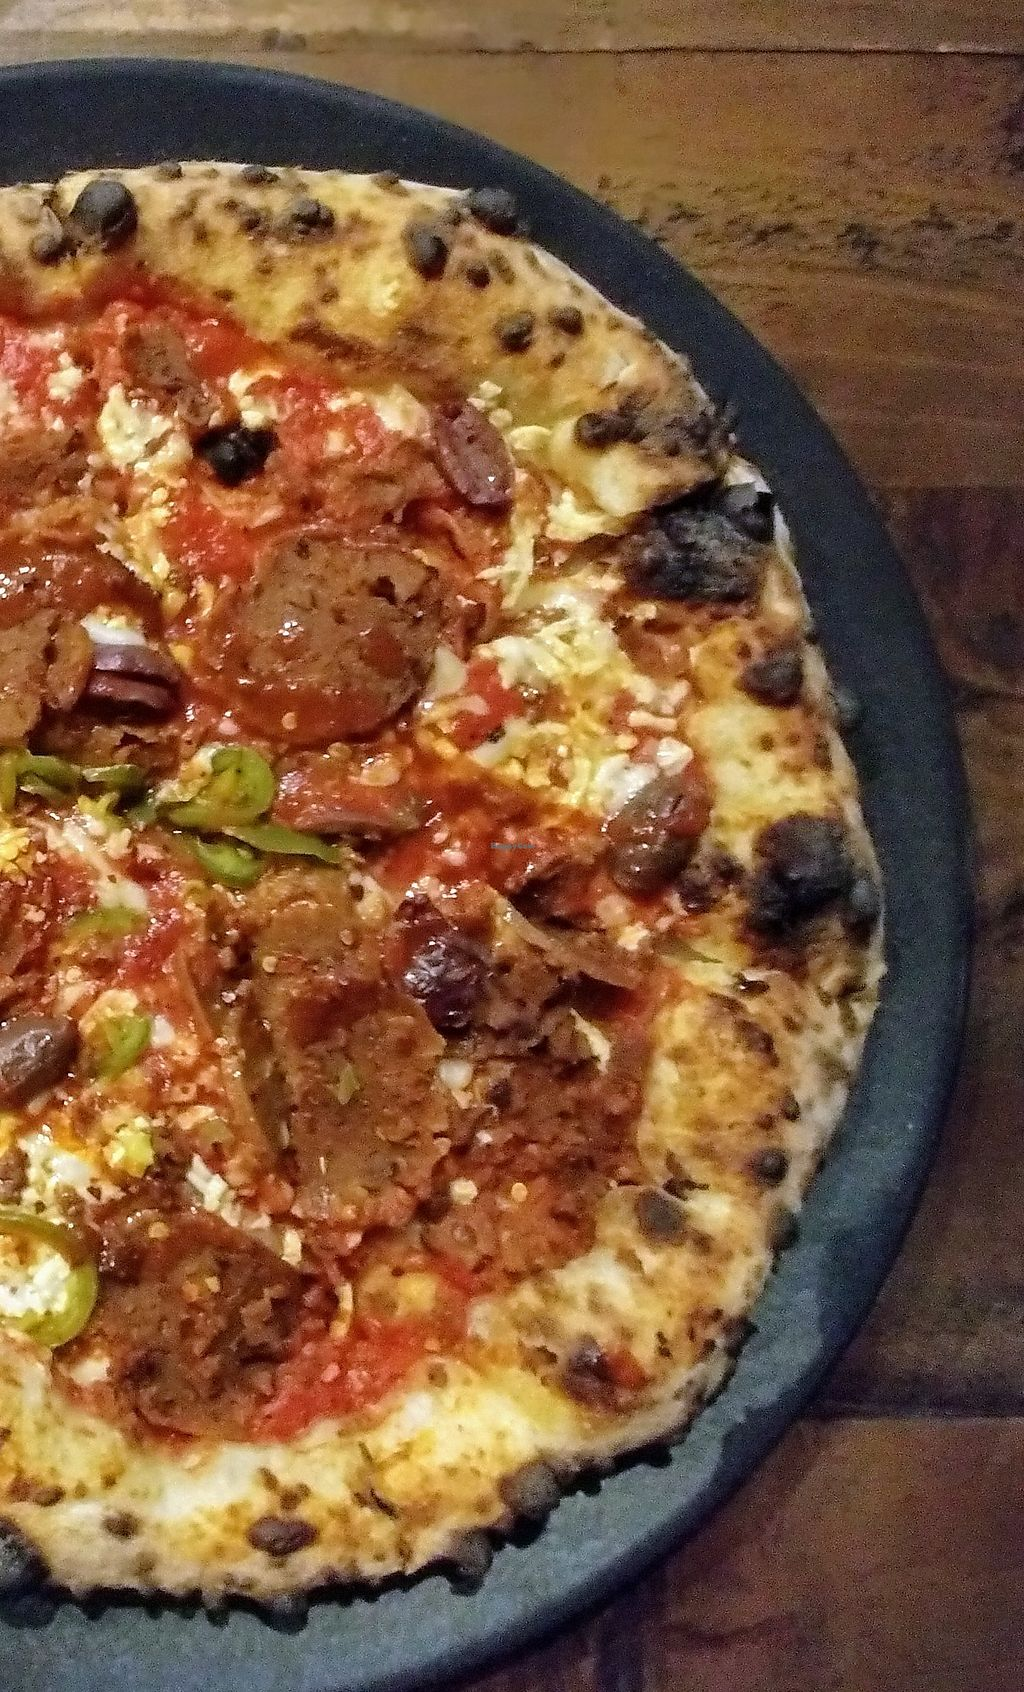 """Photo of Red Sparrow Pizza  by <a href=""""/members/profile/karlaess"""">karlaess</a> <br/>Volcano pizza <br/> March 31, 2018  - <a href='/contact/abuse/image/84855/378587'>Report</a>"""